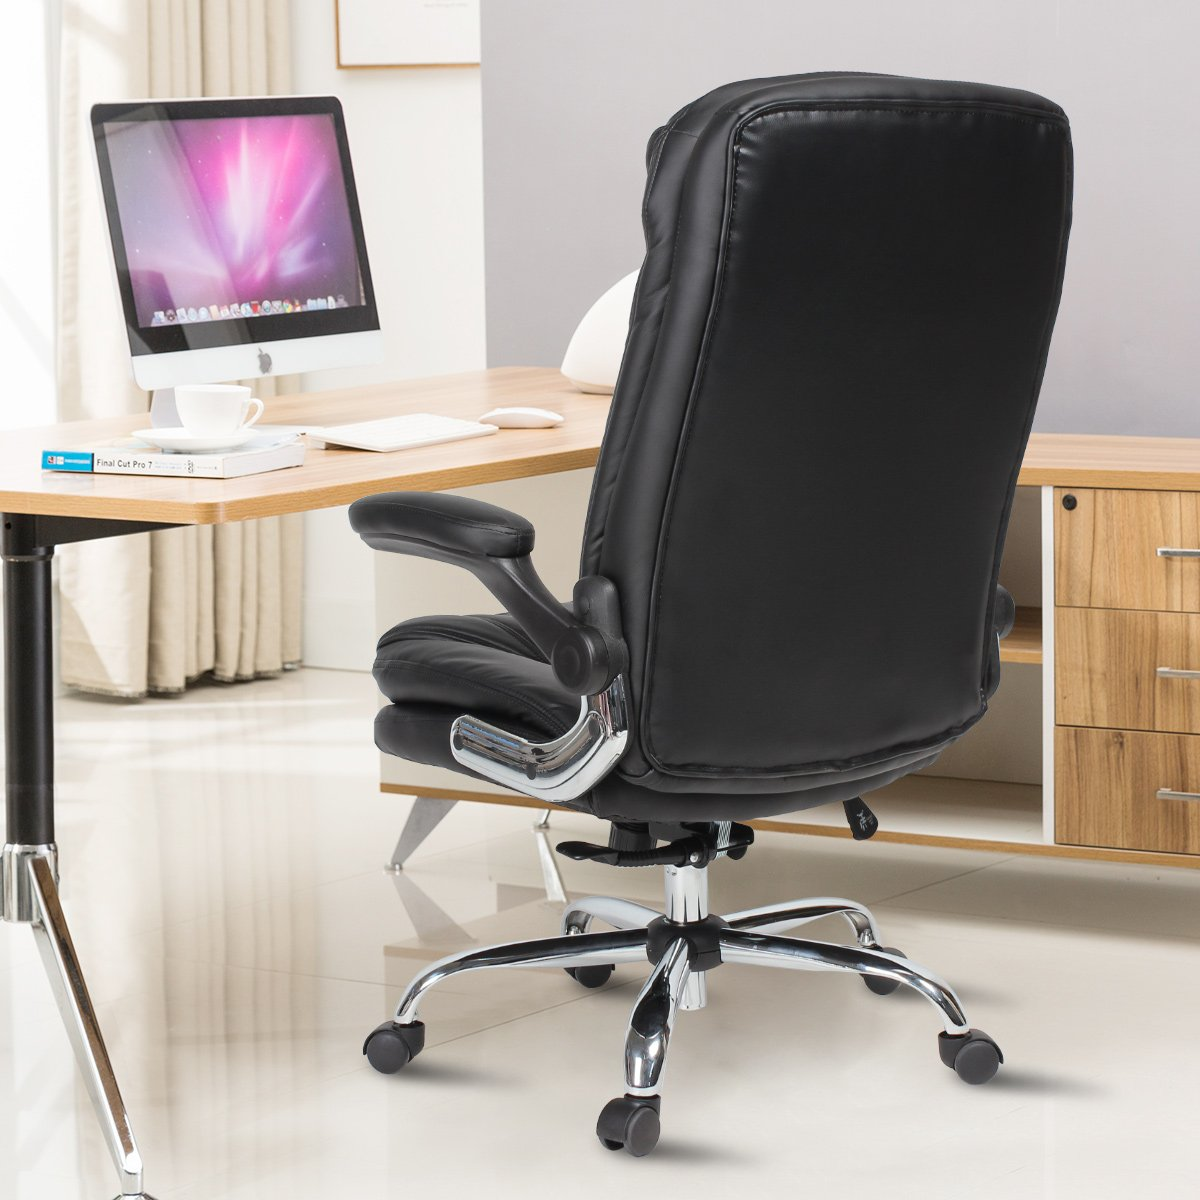 YAMASORO Ergonomic Home Office Chair with Flip-Up Arms and Comfy Headrest PU Leather High-Back Computer Desk Chair Big and Tall Capacity 330lbs Black by YAMASORO (Image #3)